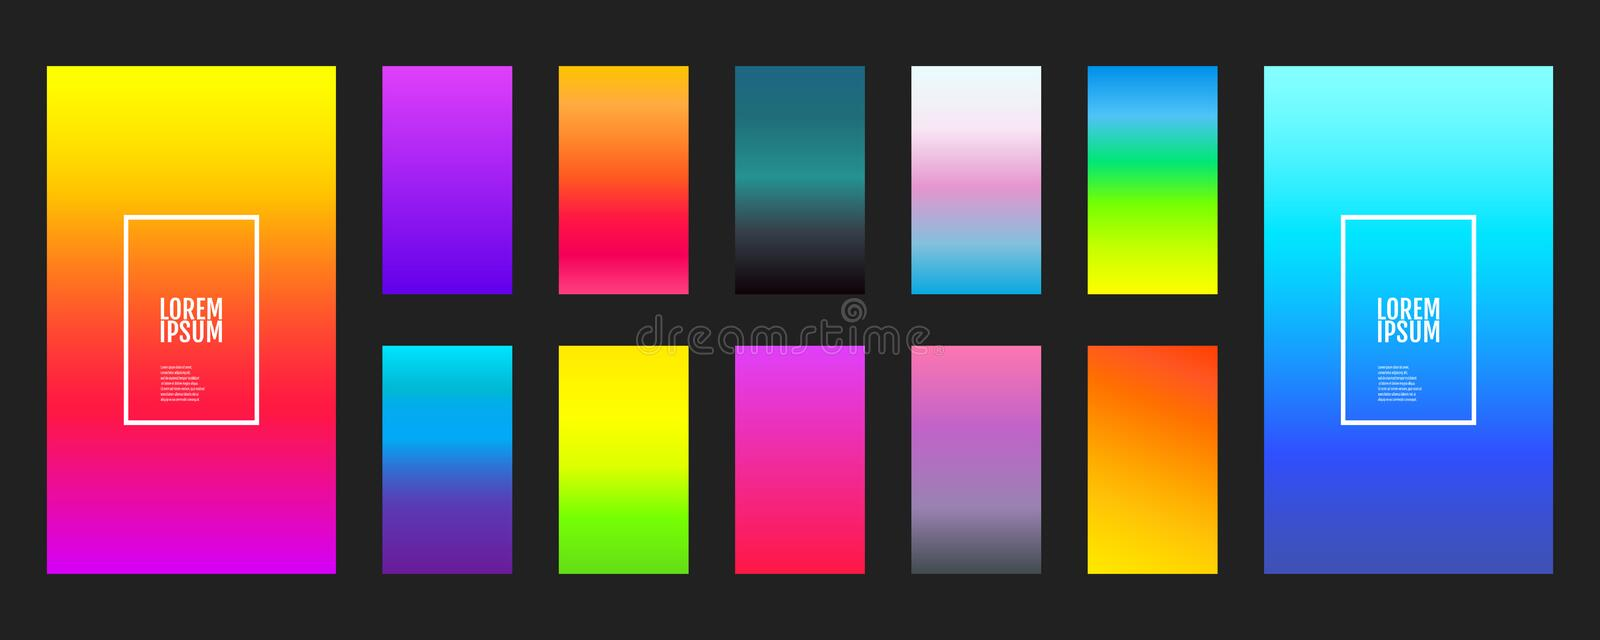 Collection of color gradients background on a dark background. Modern vector screen design for mobile application. Soft color. Gradients. Vector illustration royalty free illustration